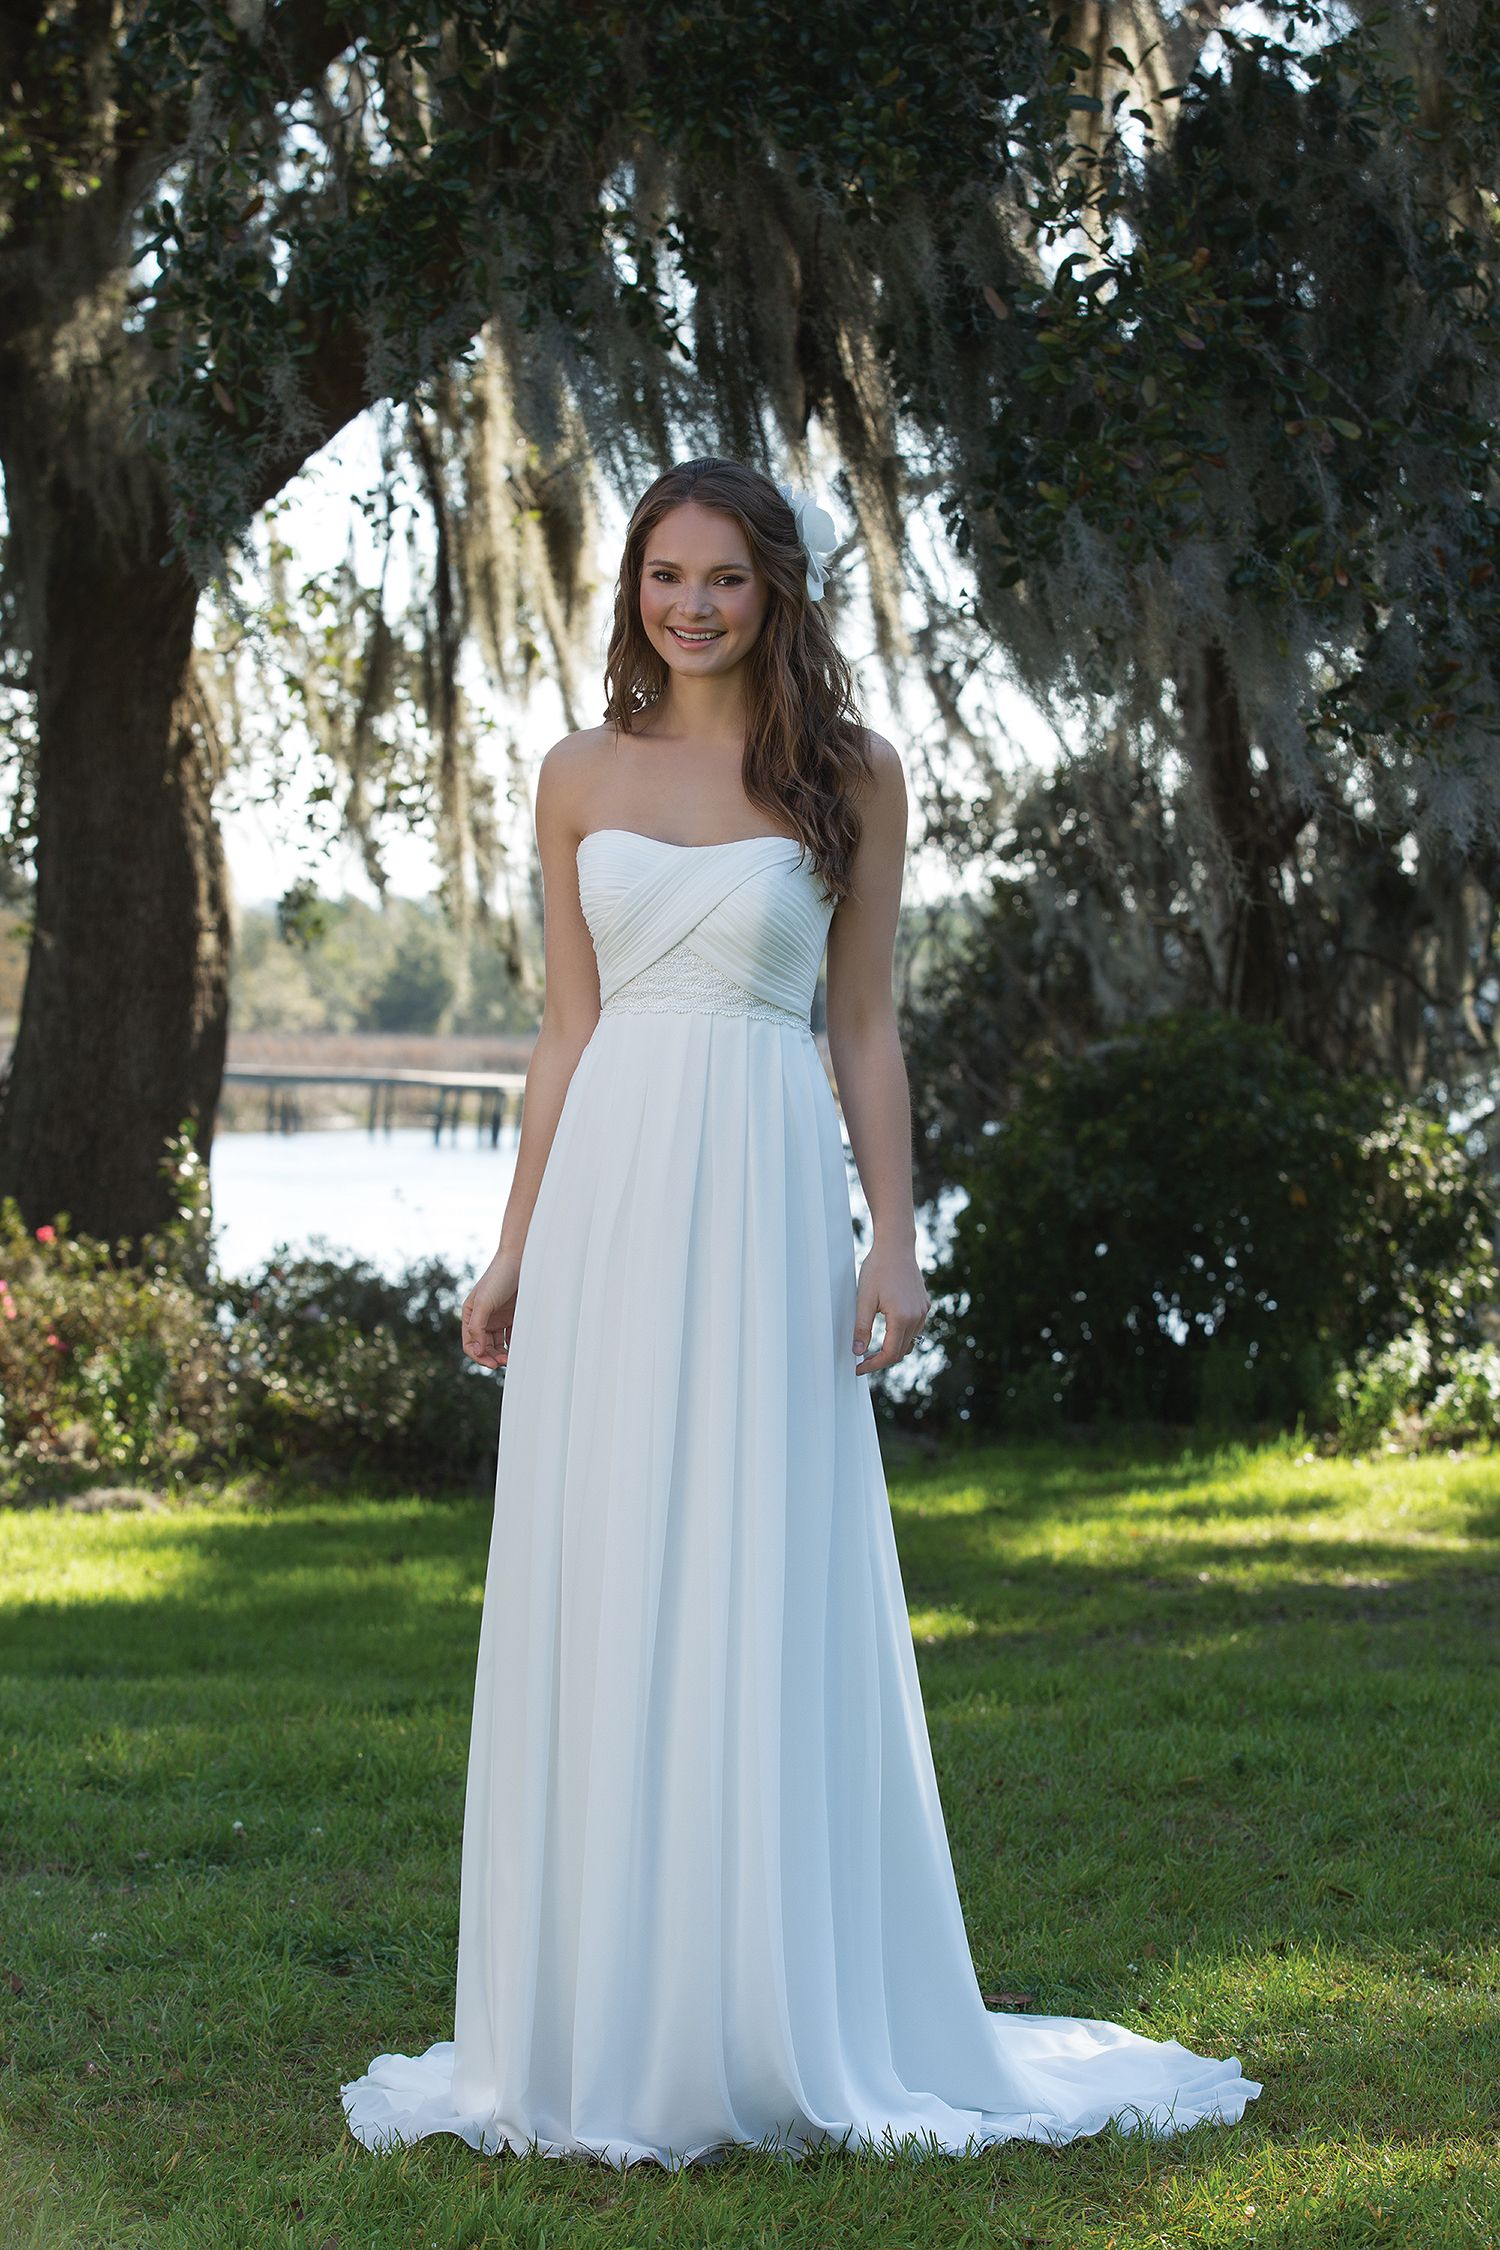 The delicate details of this Grecian inspired strapless gown include ...